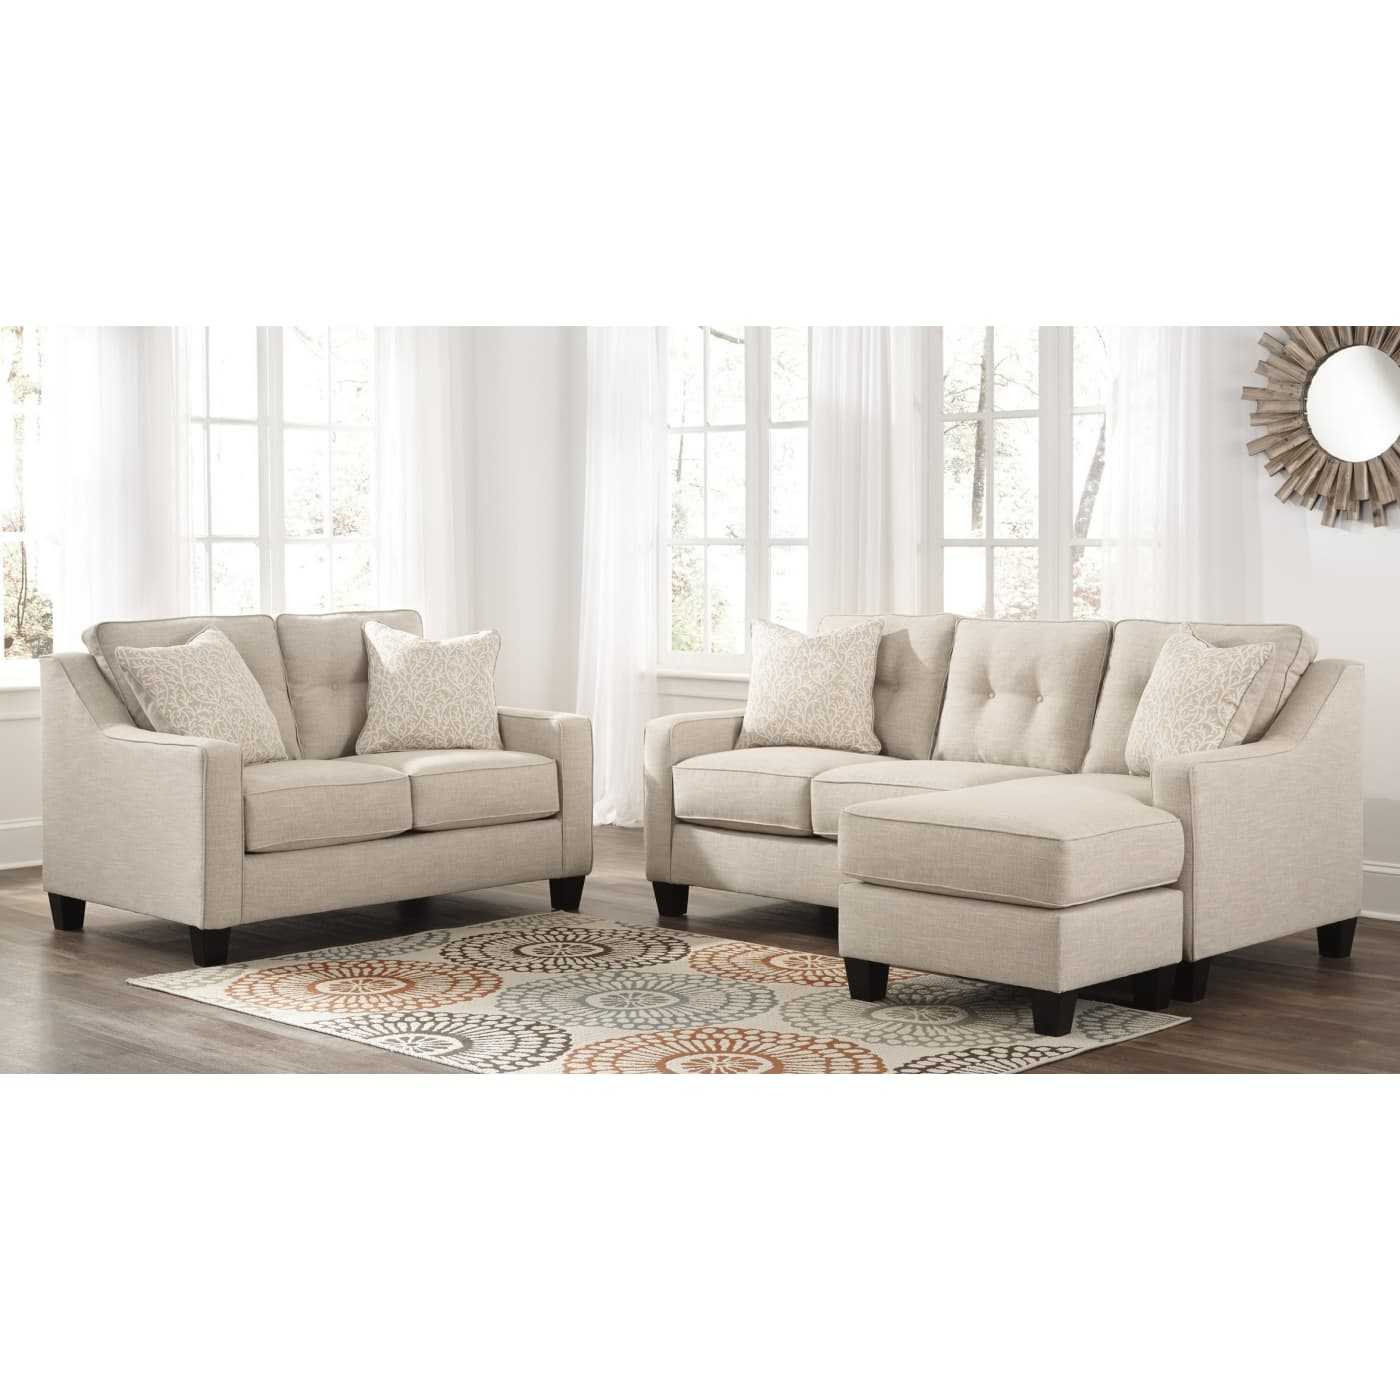 Signature Design by Ashley Aldie Nuvella Sand 2 Piece Living Room ...